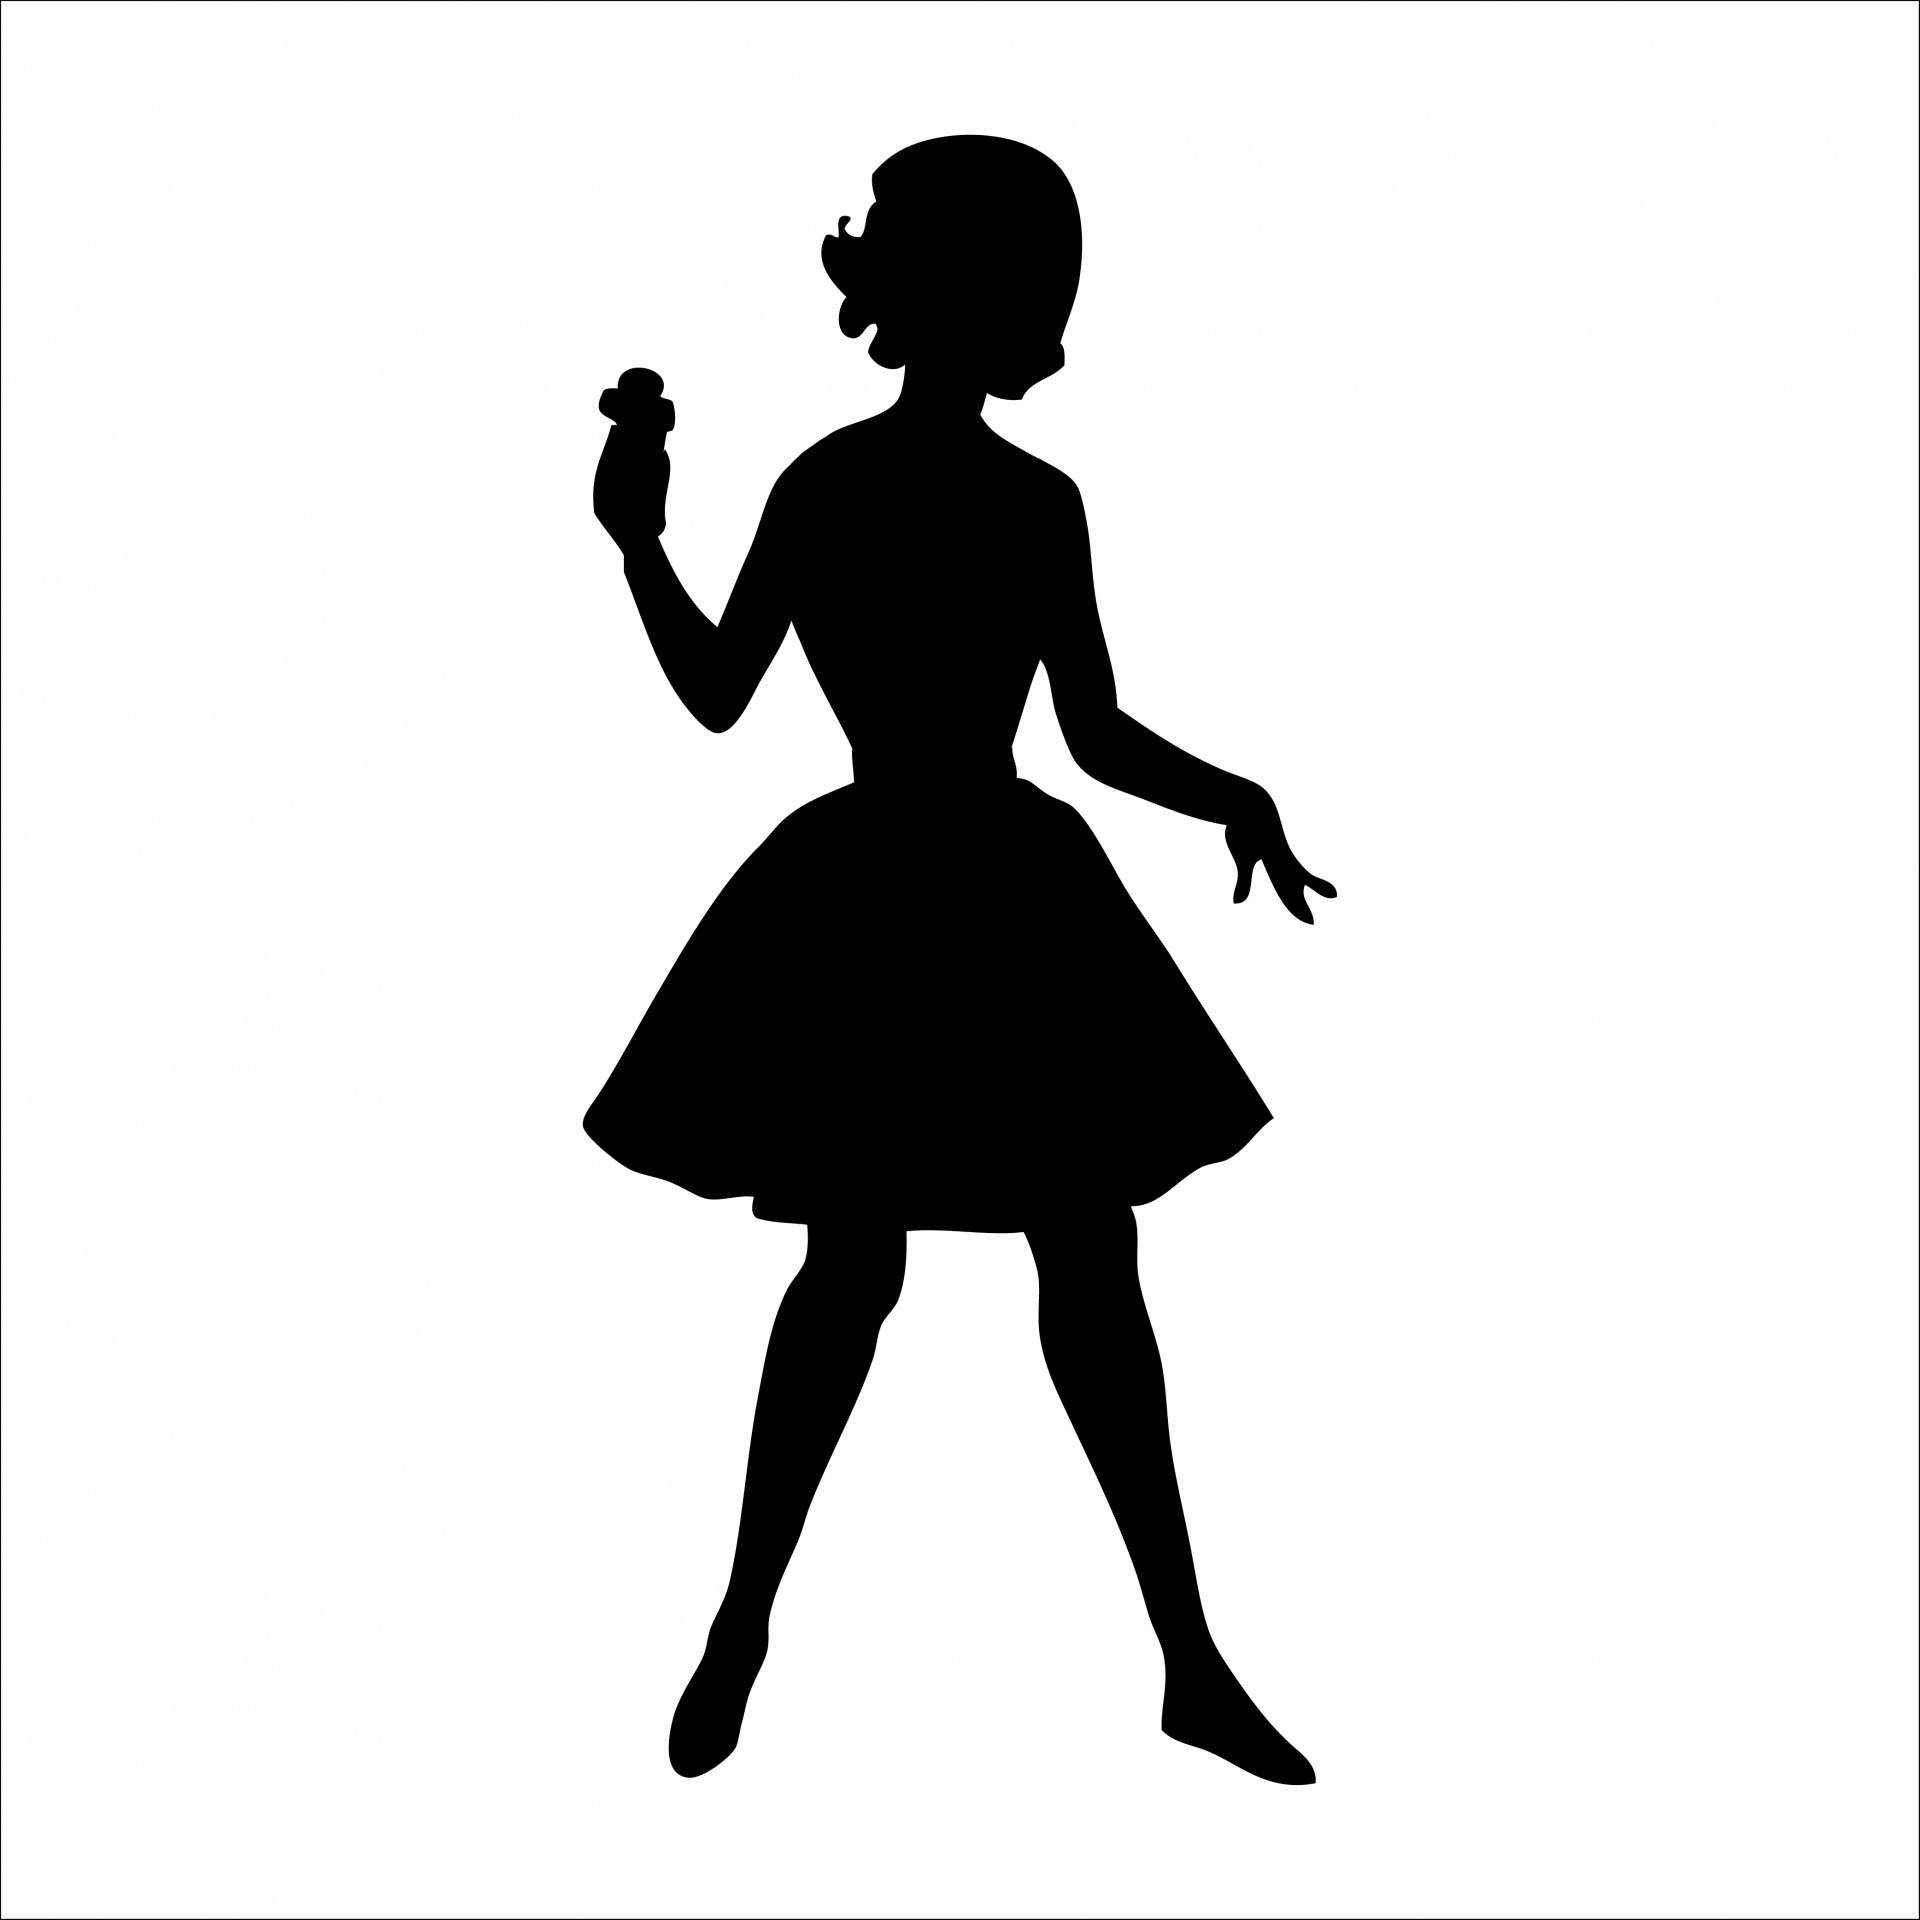 Woman Silhouette 1950s Clipart Free Stock Photo.